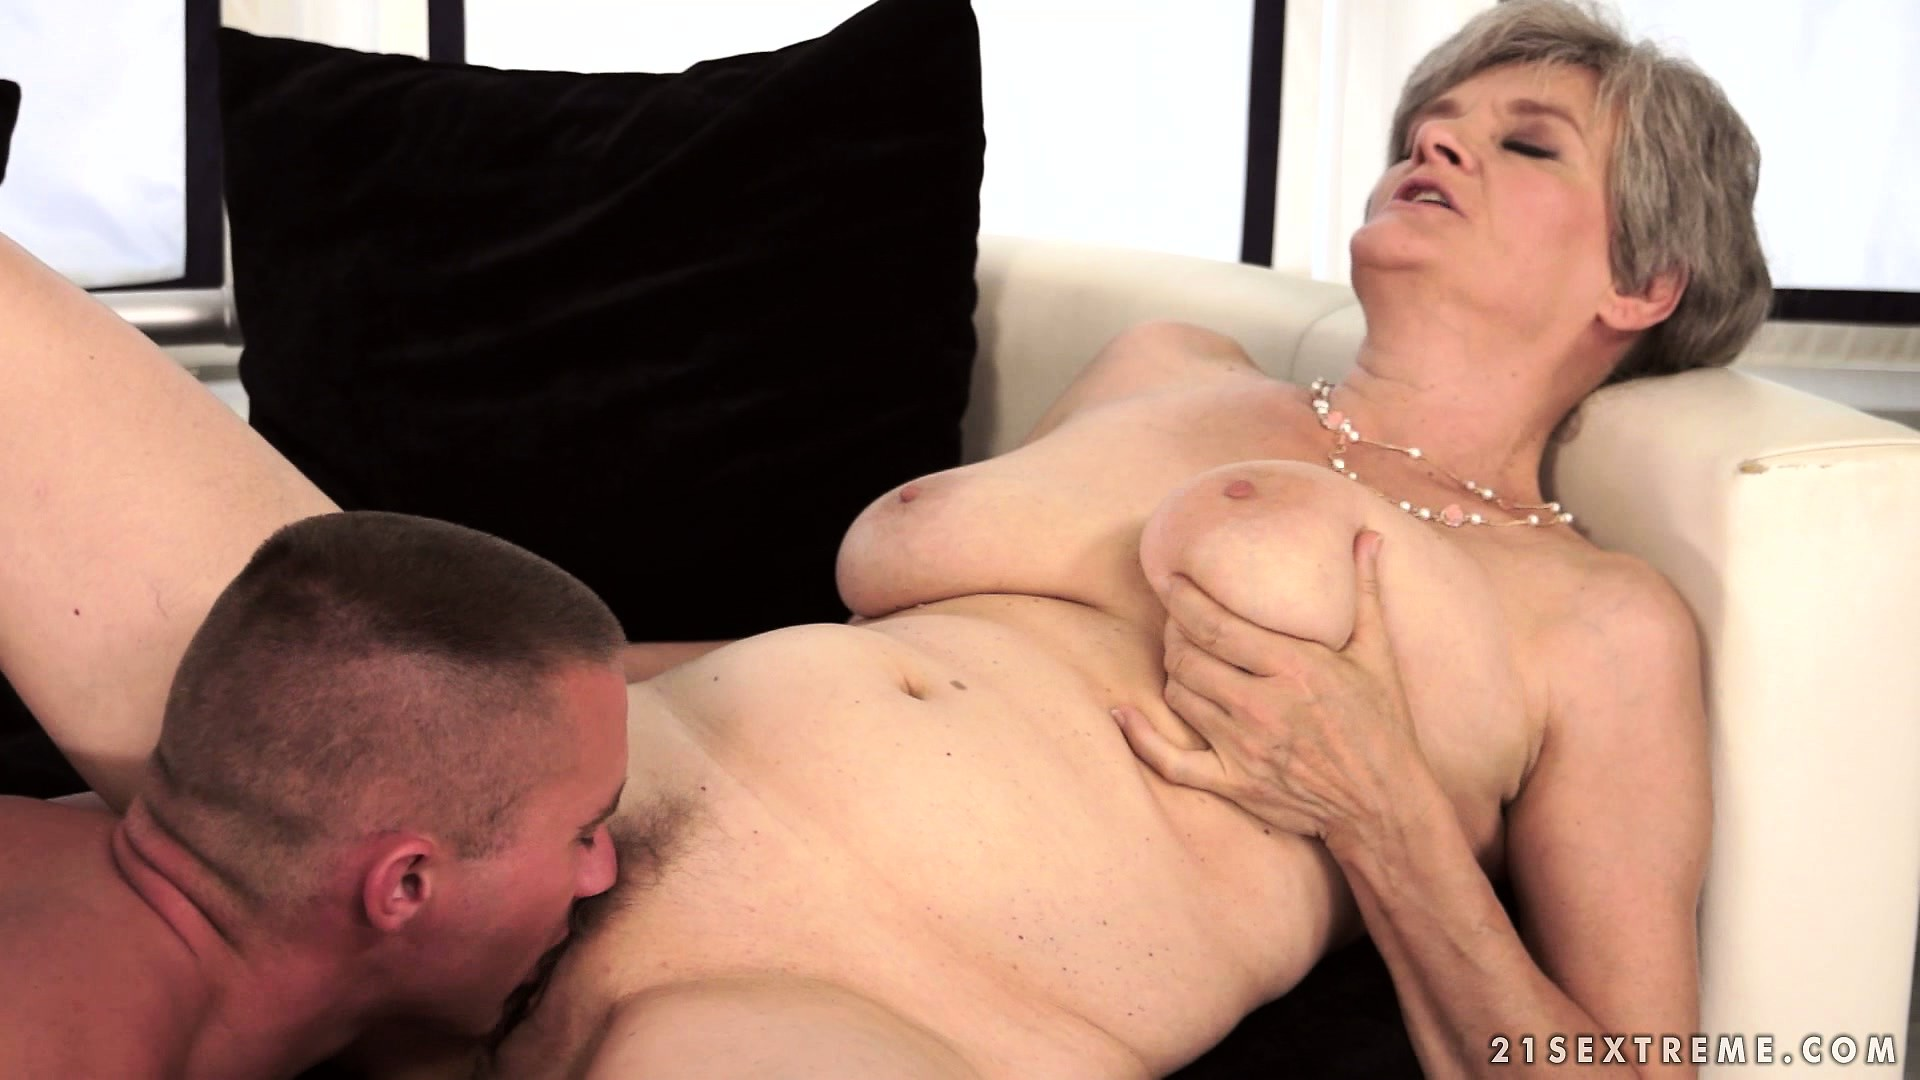 Porno Video of The Best Thing In Life, For This Granny, Is Having A Studly Young Dick To Play With